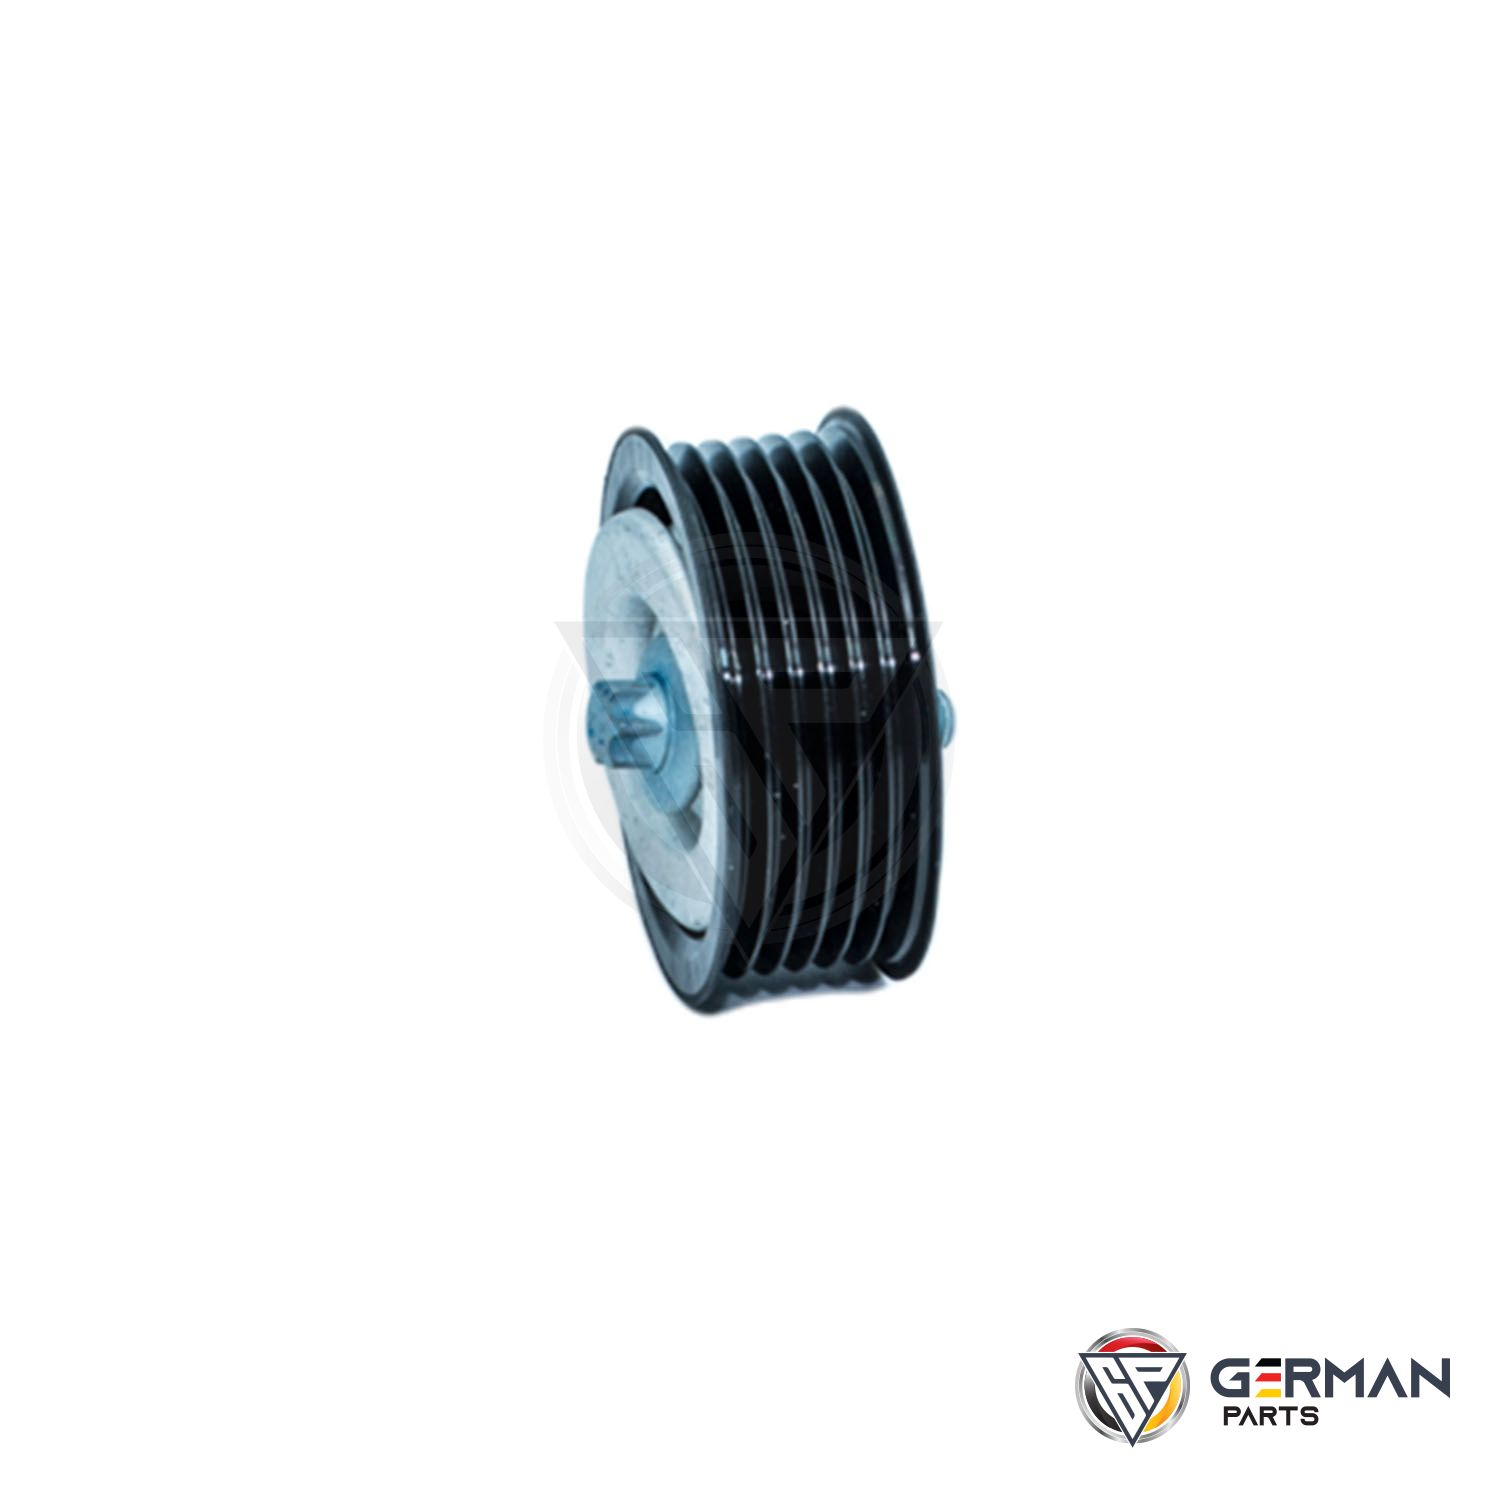 Buy Genuine Mercedes Benz Sheave Pulley 1562020619 - German Parts